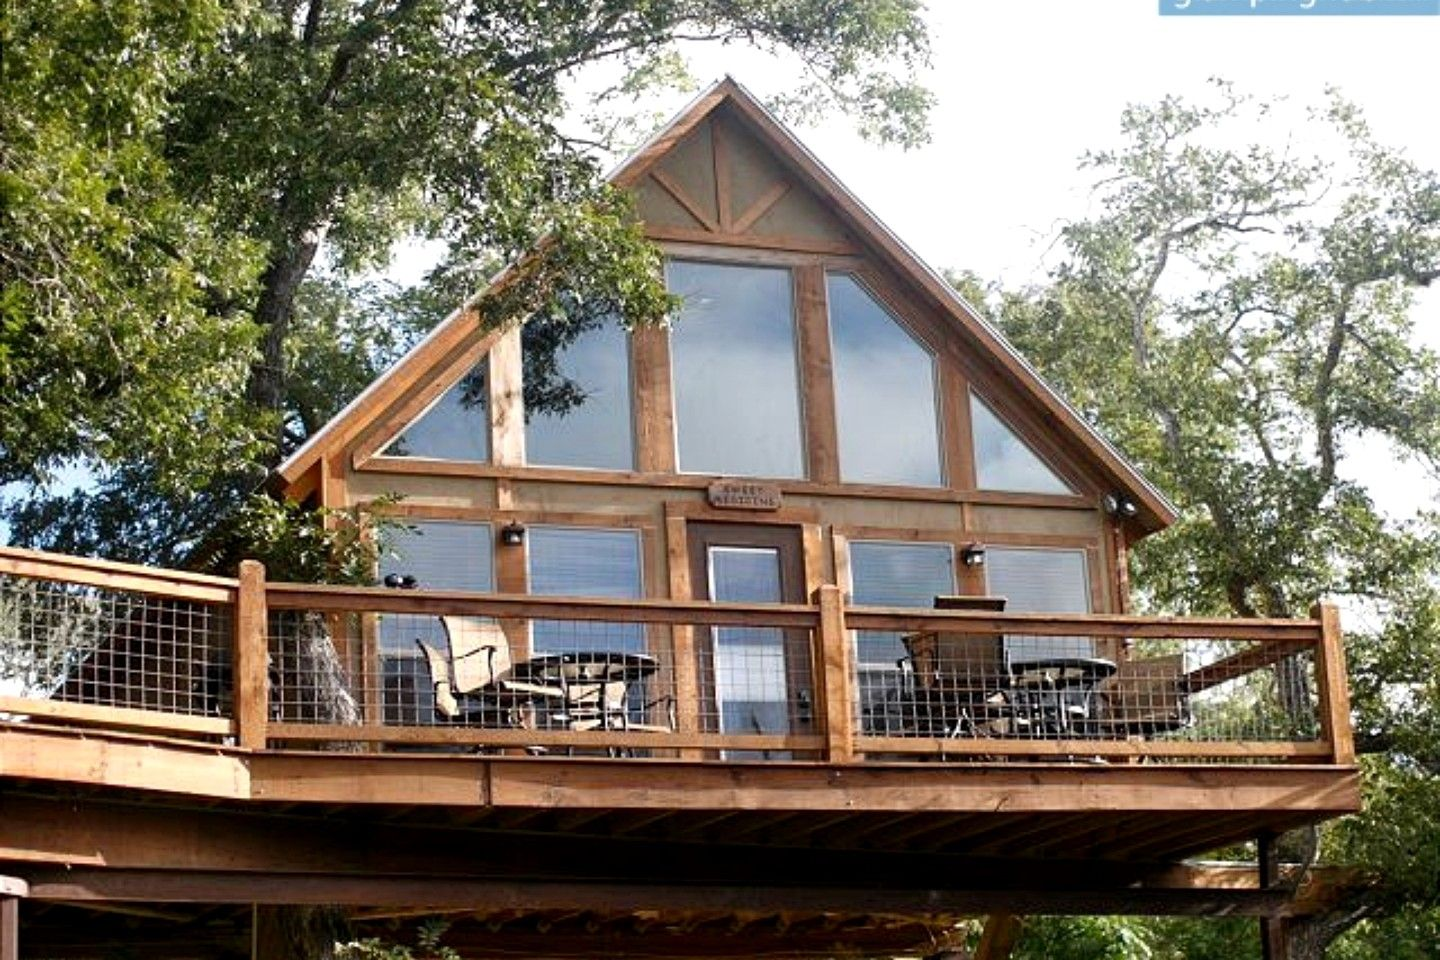 Creekside Tree House Rentals In New Braunfels Texas